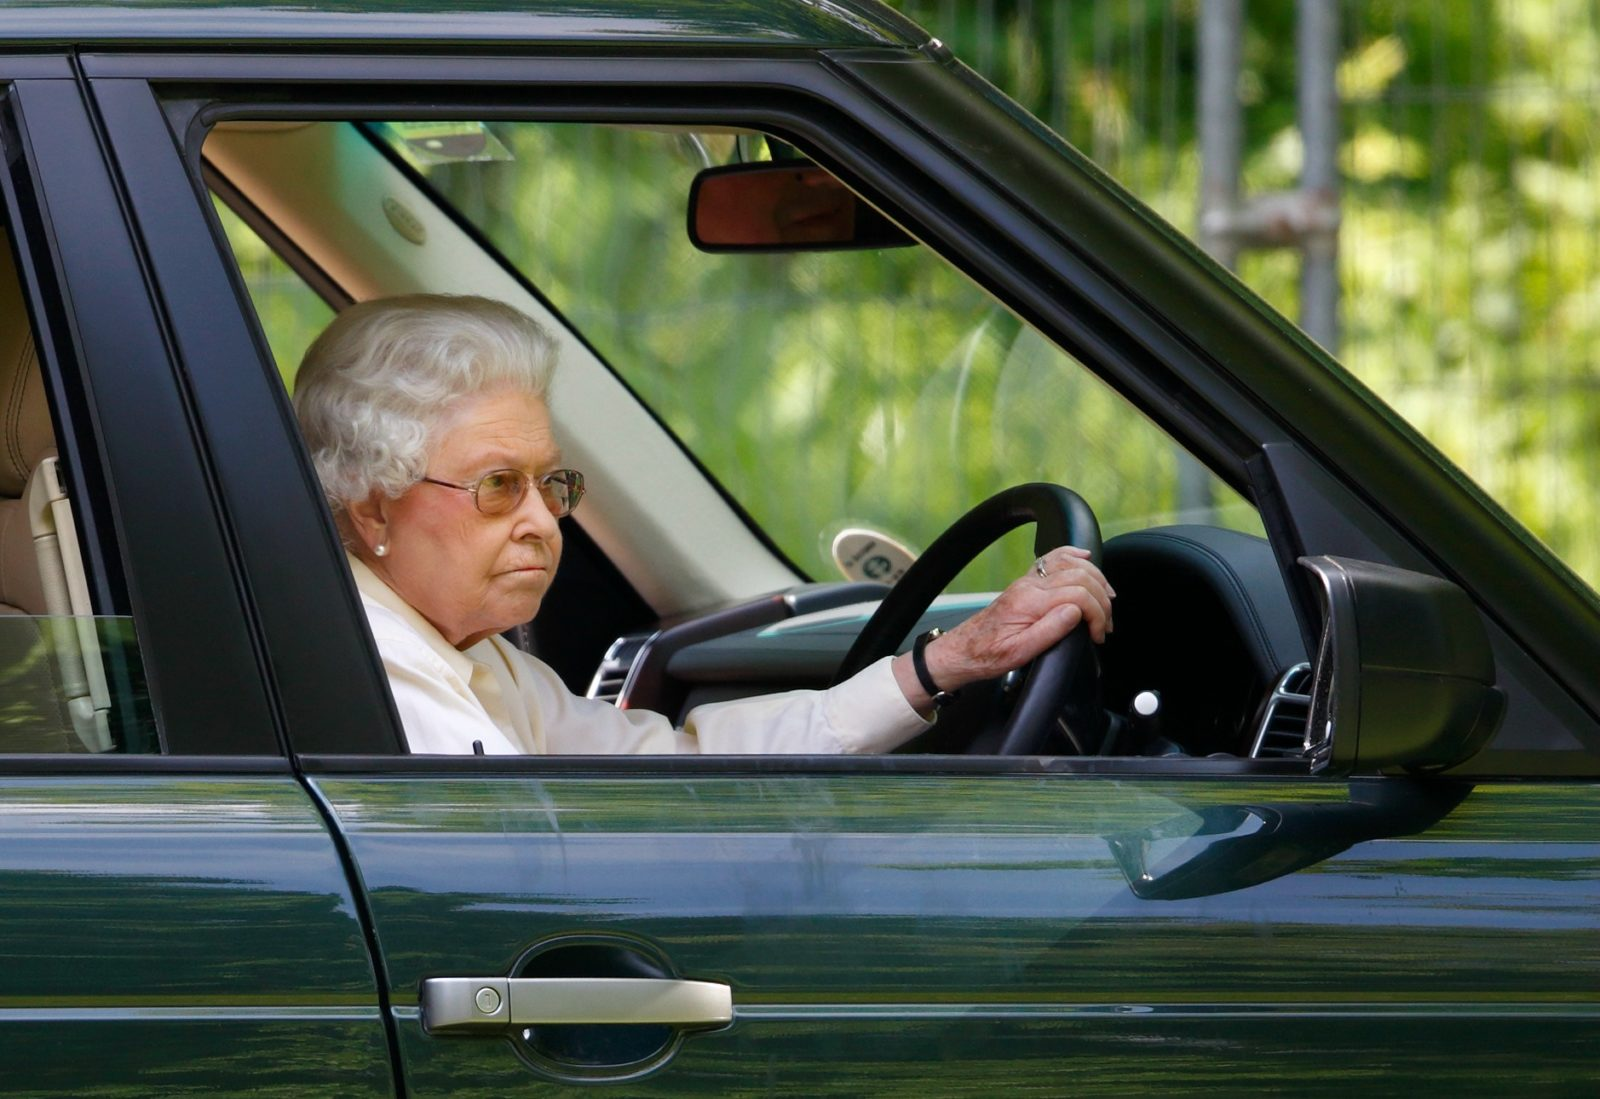 The Queen is often spotted driving herself around. Source: Getty.